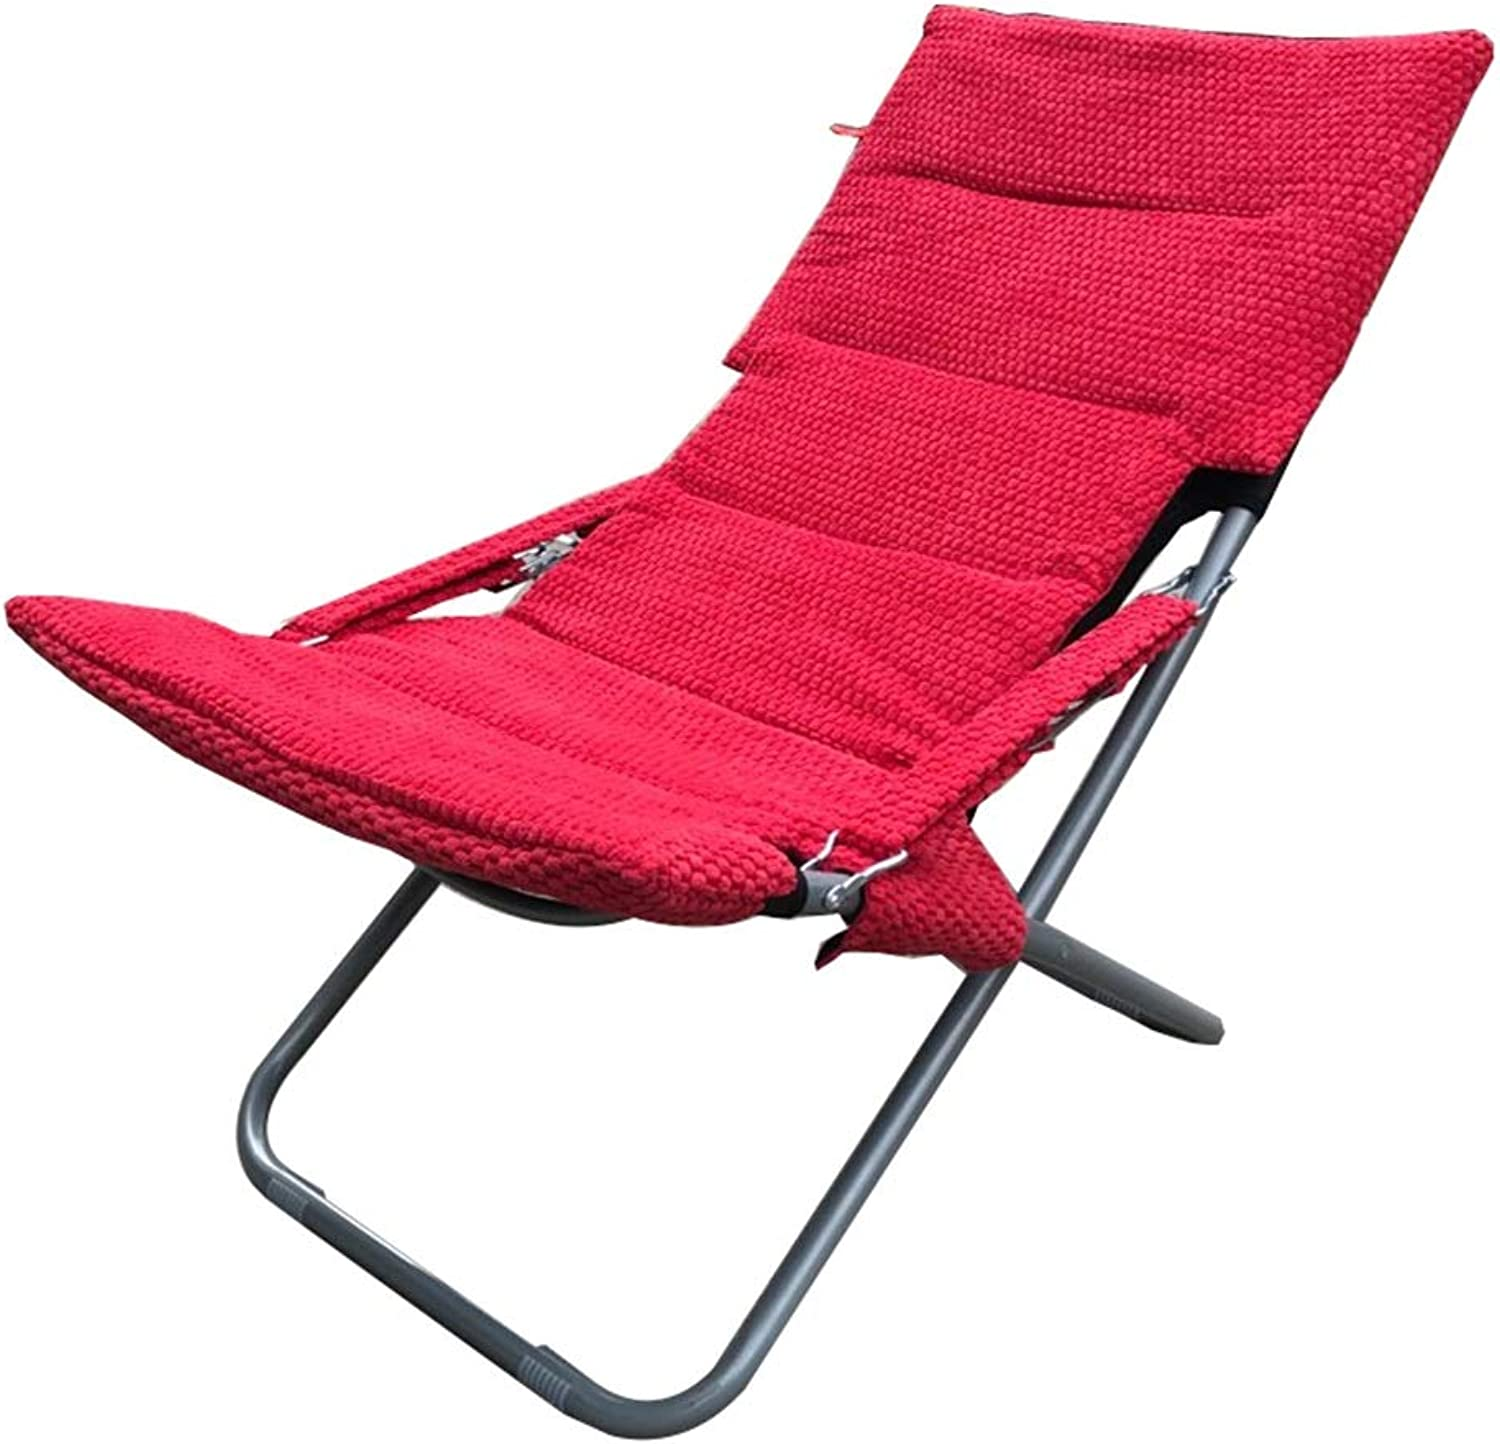 Recliner Household Indoor and Outdoor Patio Lazy Chair Lawn Camping Deck Outdoor Lounge Chair (color   Red, Size   A)